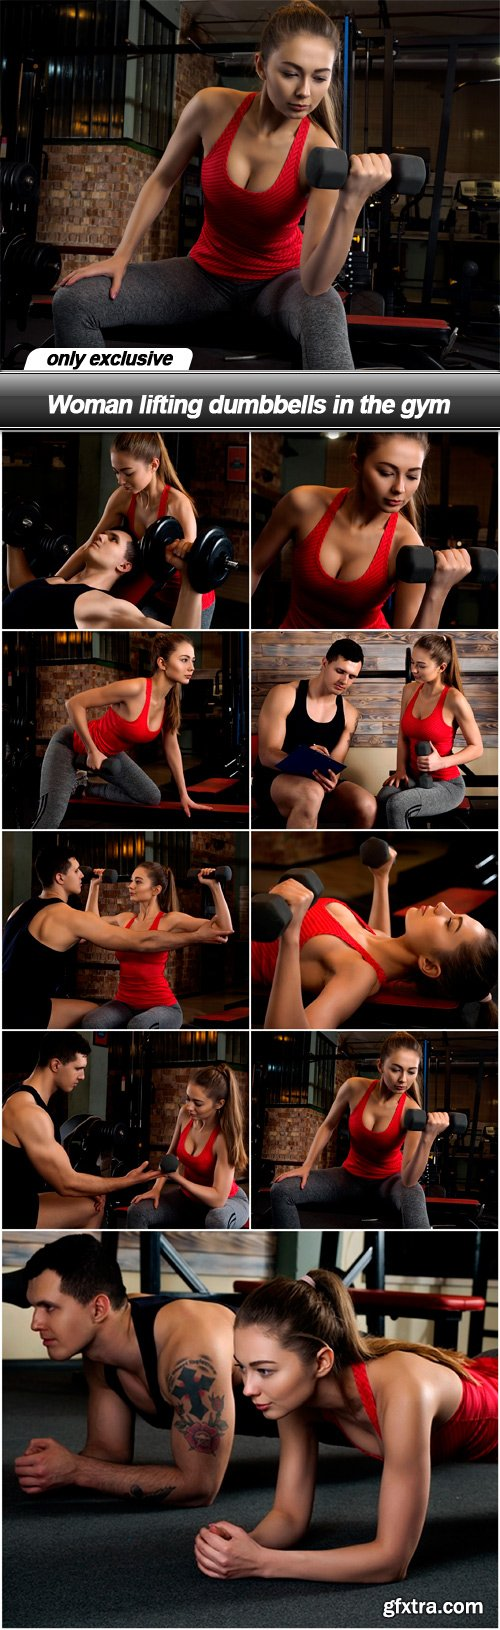 Woman lifting dumbbells in the gym - 9 UHQ JPEG